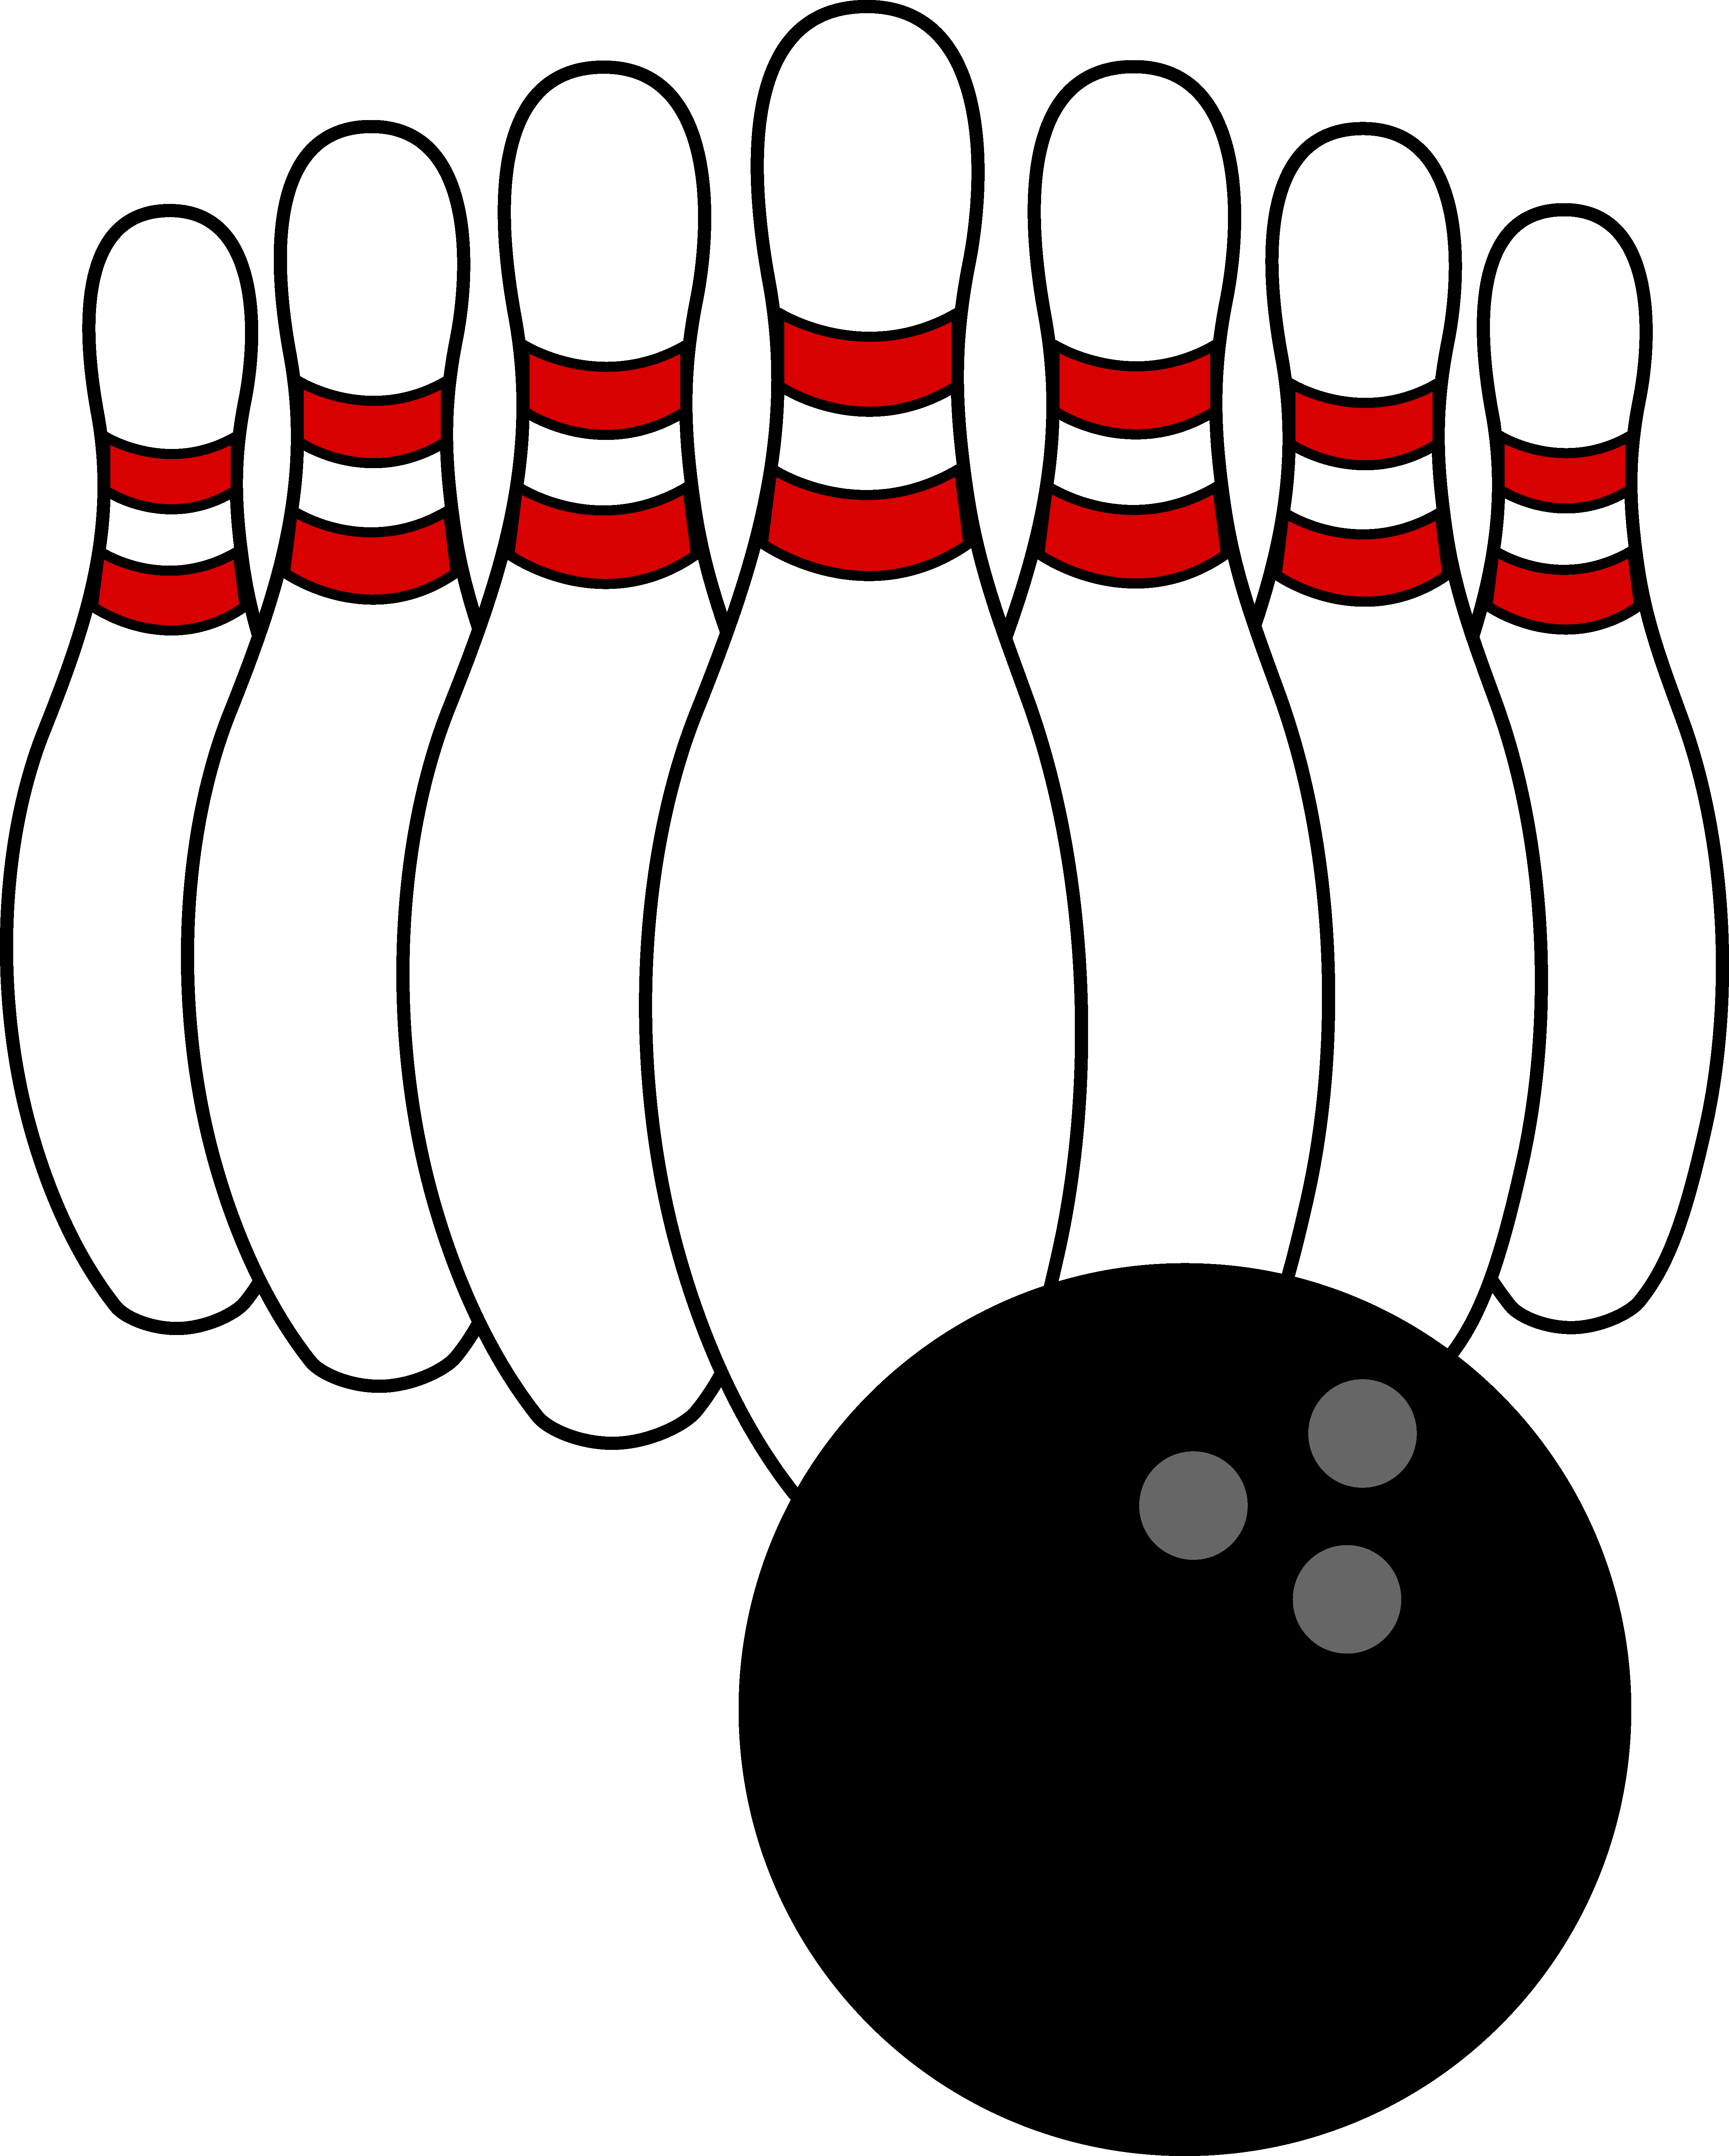 Bowling bowler clipart free images 3 - WikiClipArt